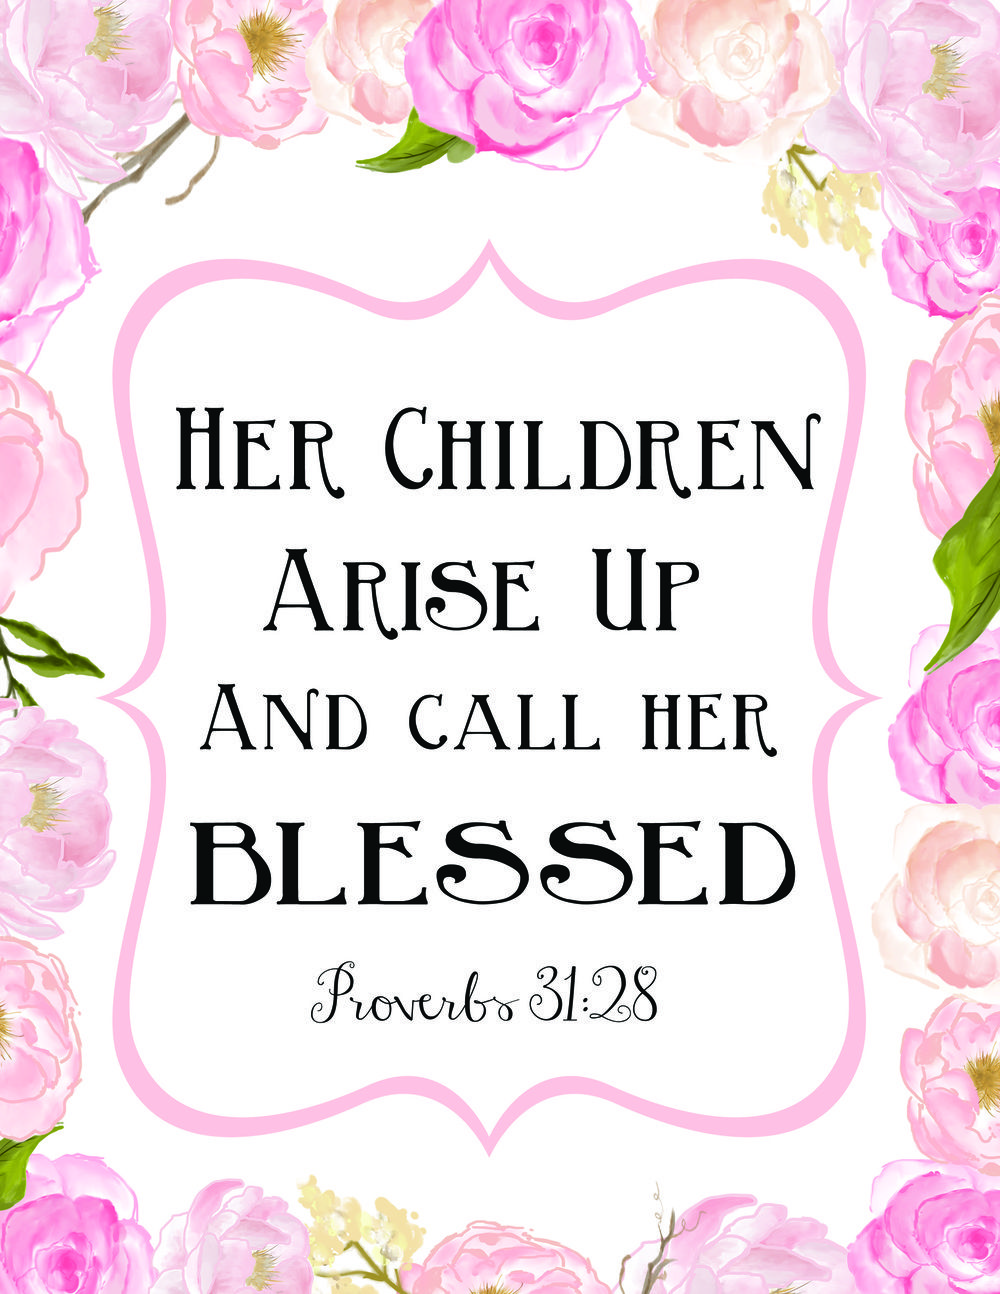 a mother 39 s love printables mothers day scripture mother 39 s day printables mothers day verses. Black Bedroom Furniture Sets. Home Design Ideas